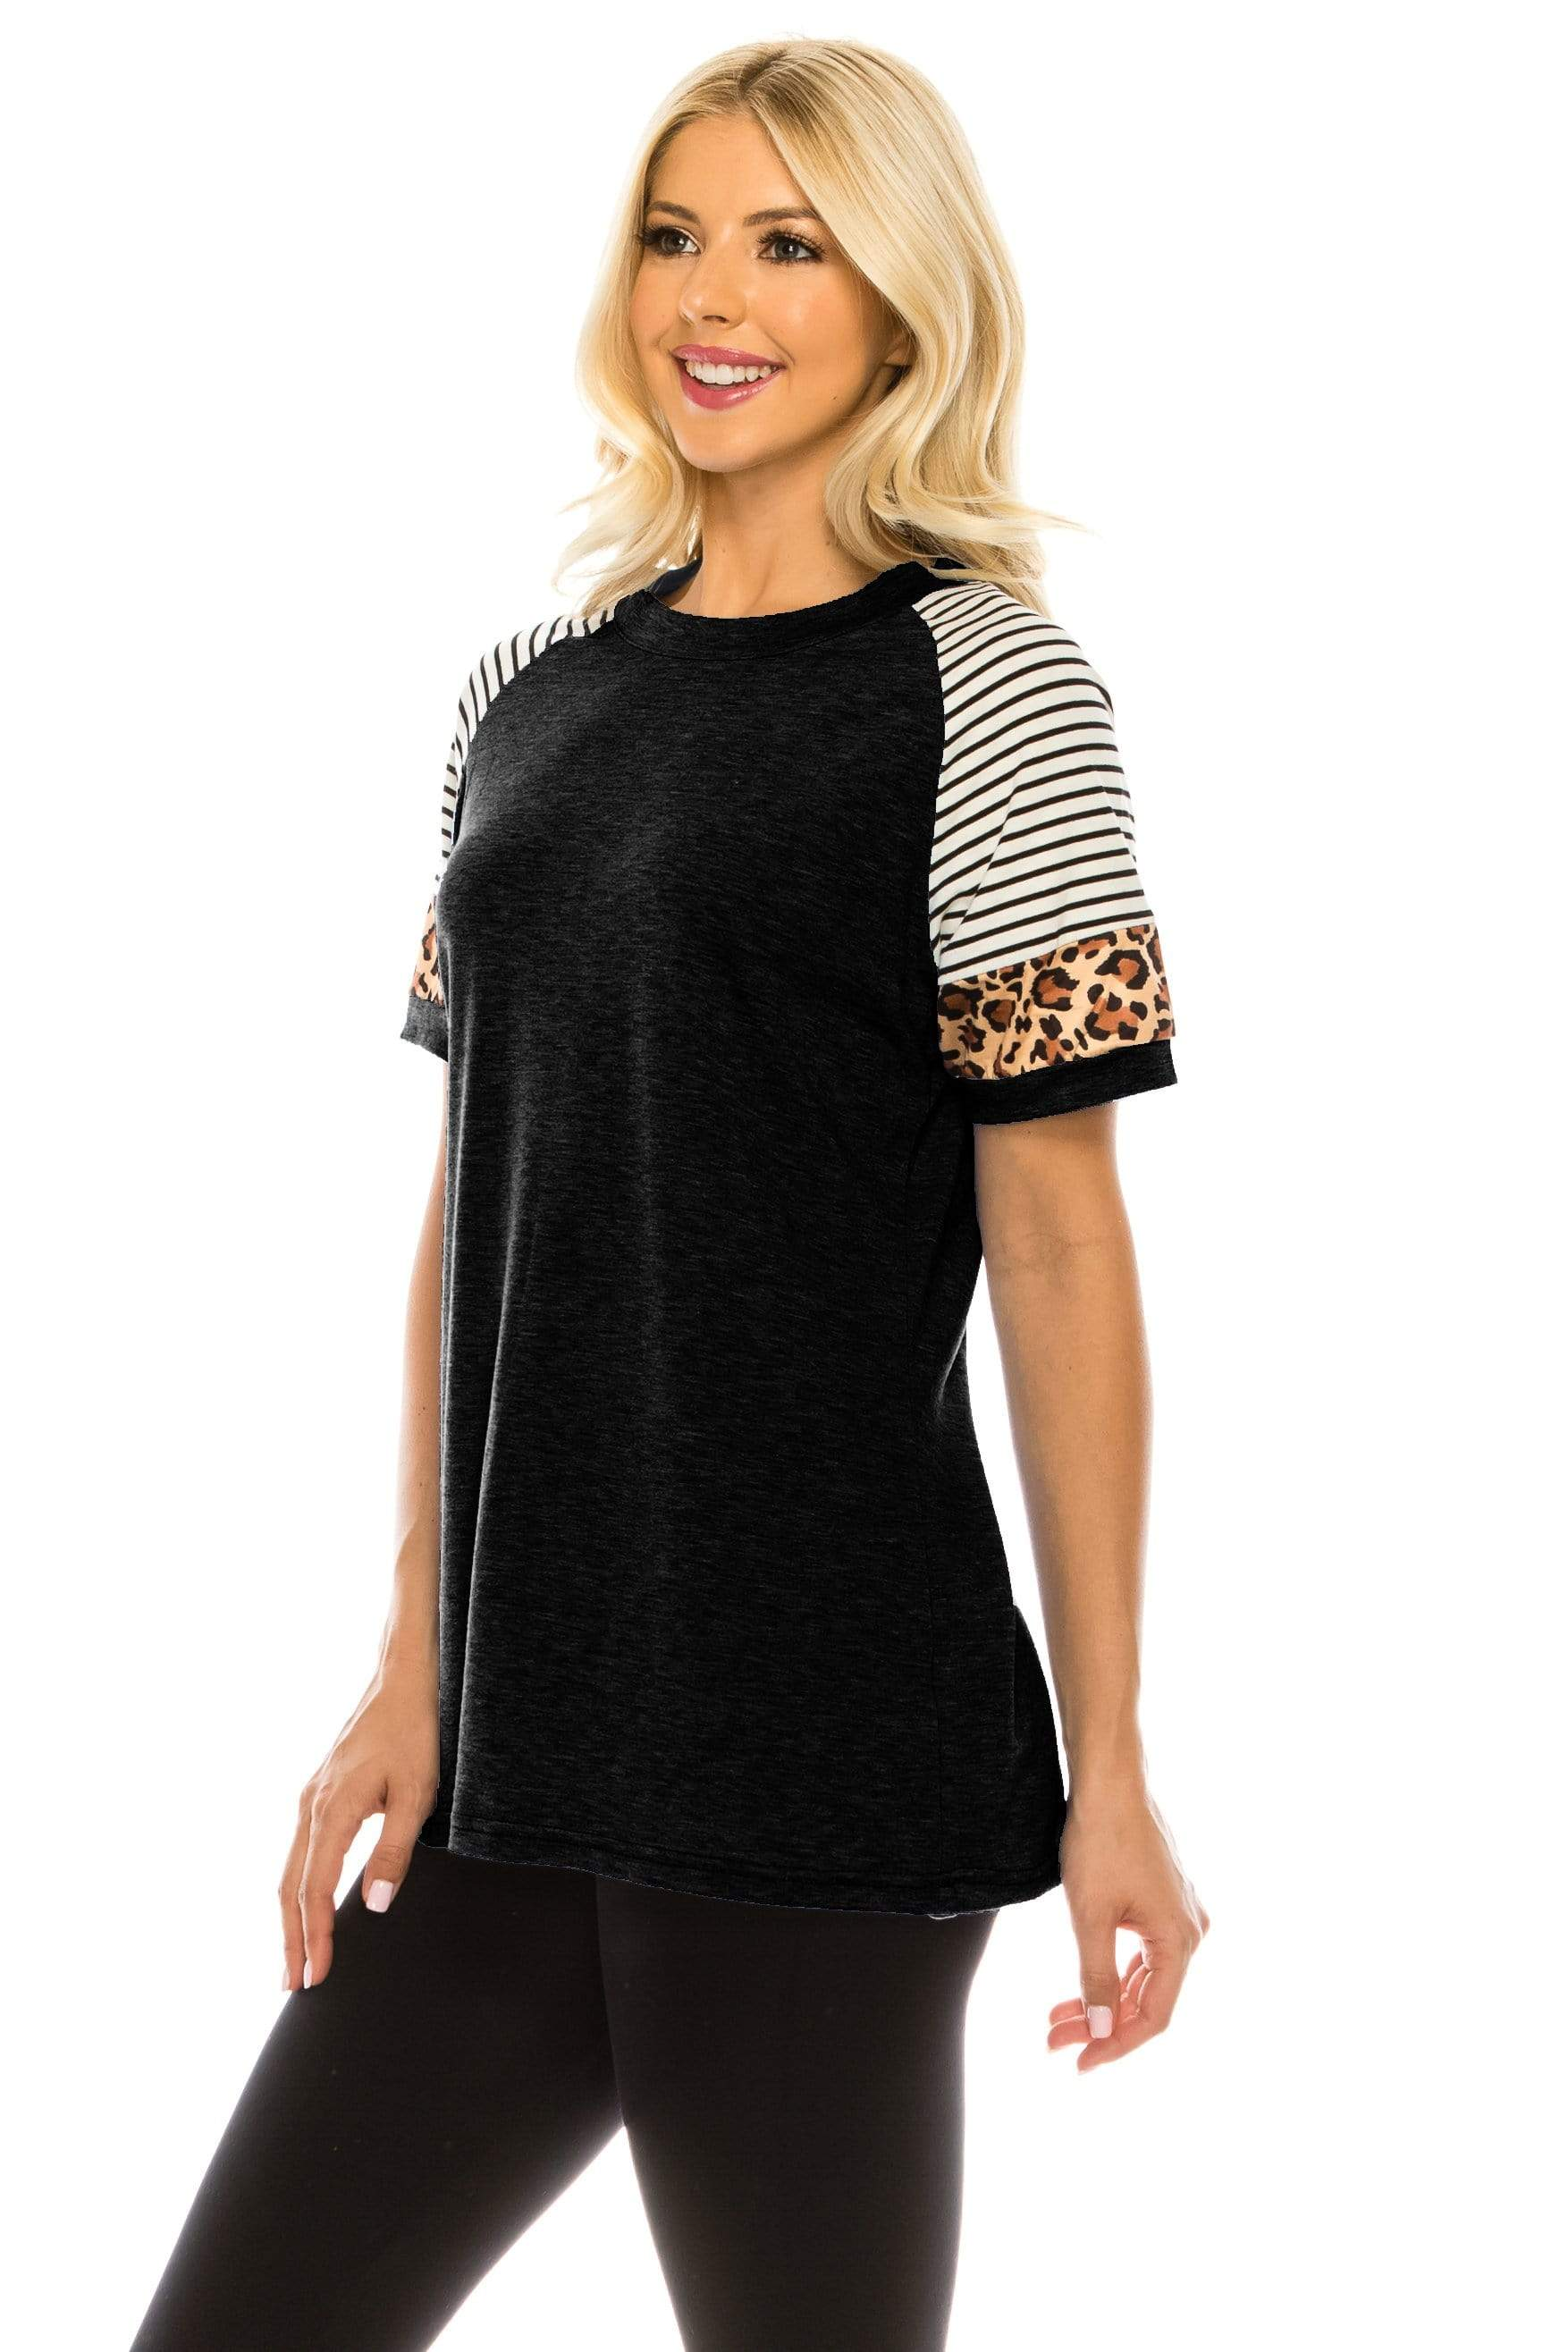 Haute Edition WOMEN'S TOP Haute Edition Women's Crew Neck Color Block Leopard Top. Plue Sizes Available